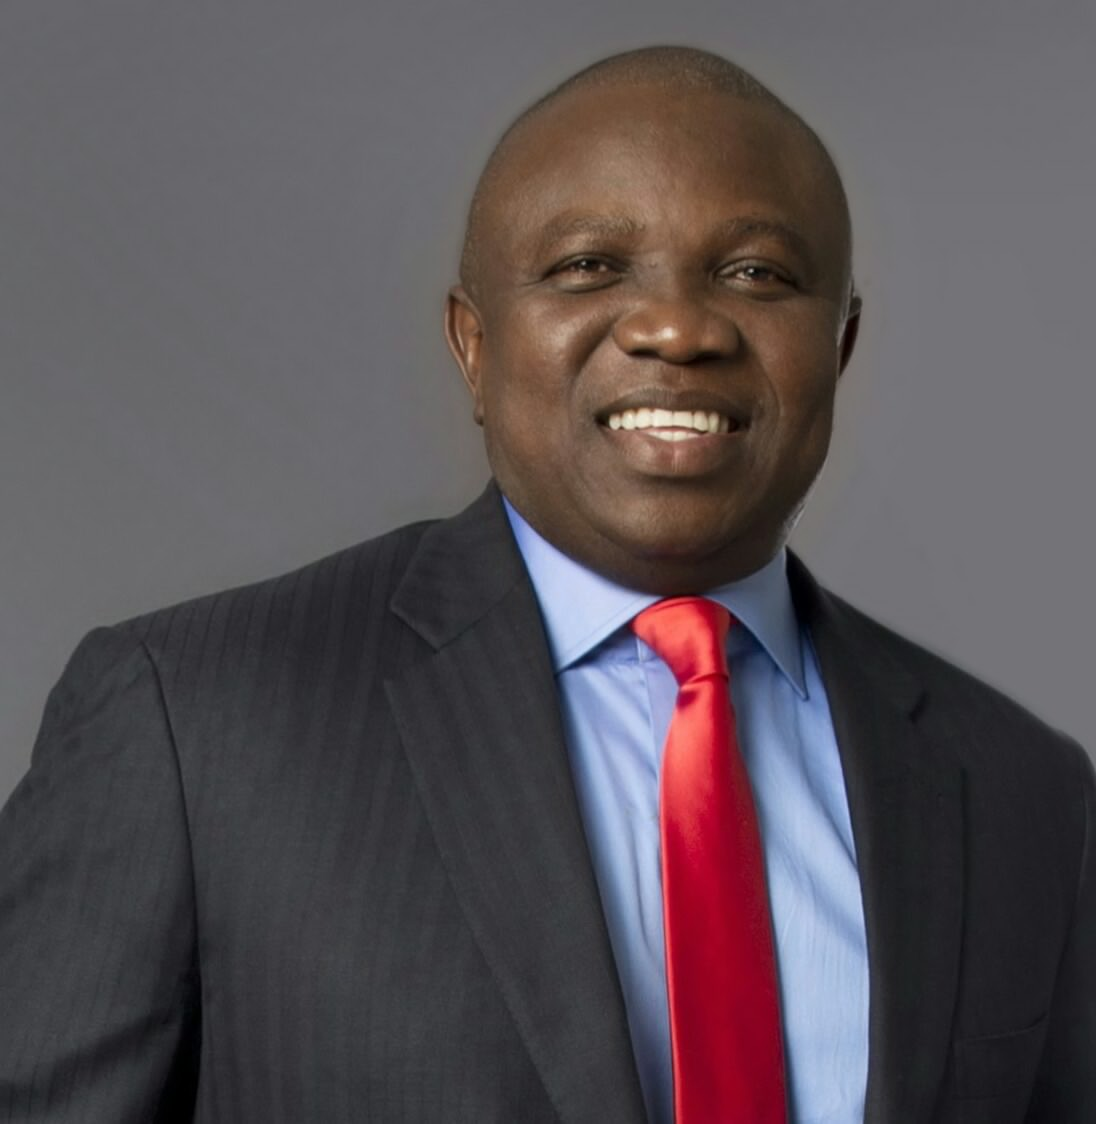 Lagos Offers Free Health Screening To Surulere